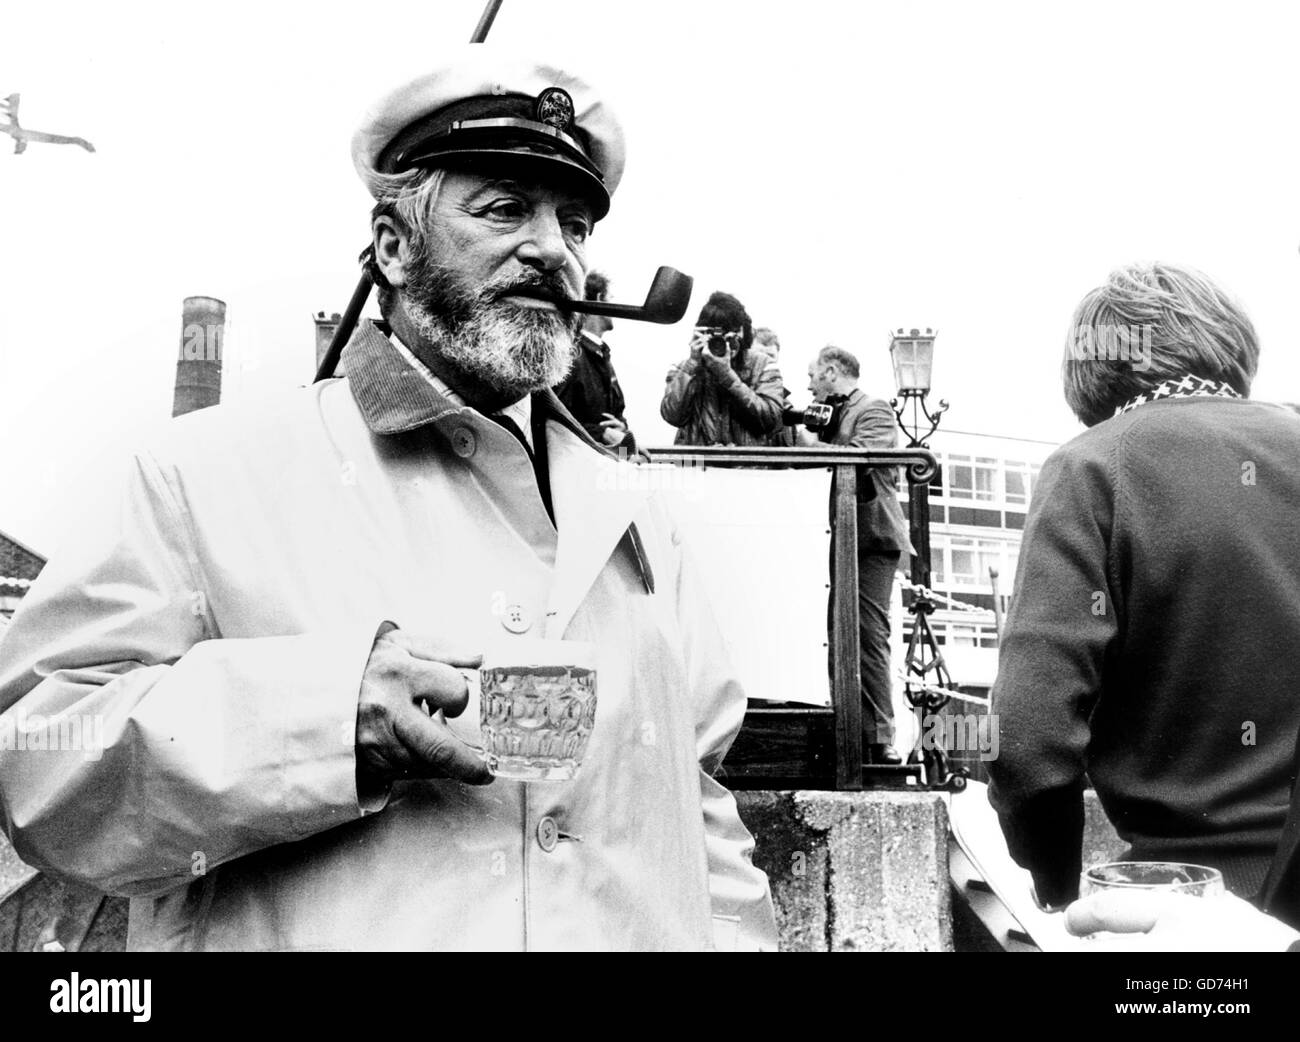 AJAX NEWS PHOTOS. 1973. PORTSMOUTH, ENGLAND. - WHITBREAD ROUND THE WORLD RACE. -  RACE COMMITTEE CHAIRMAN 1973  - Stock Image